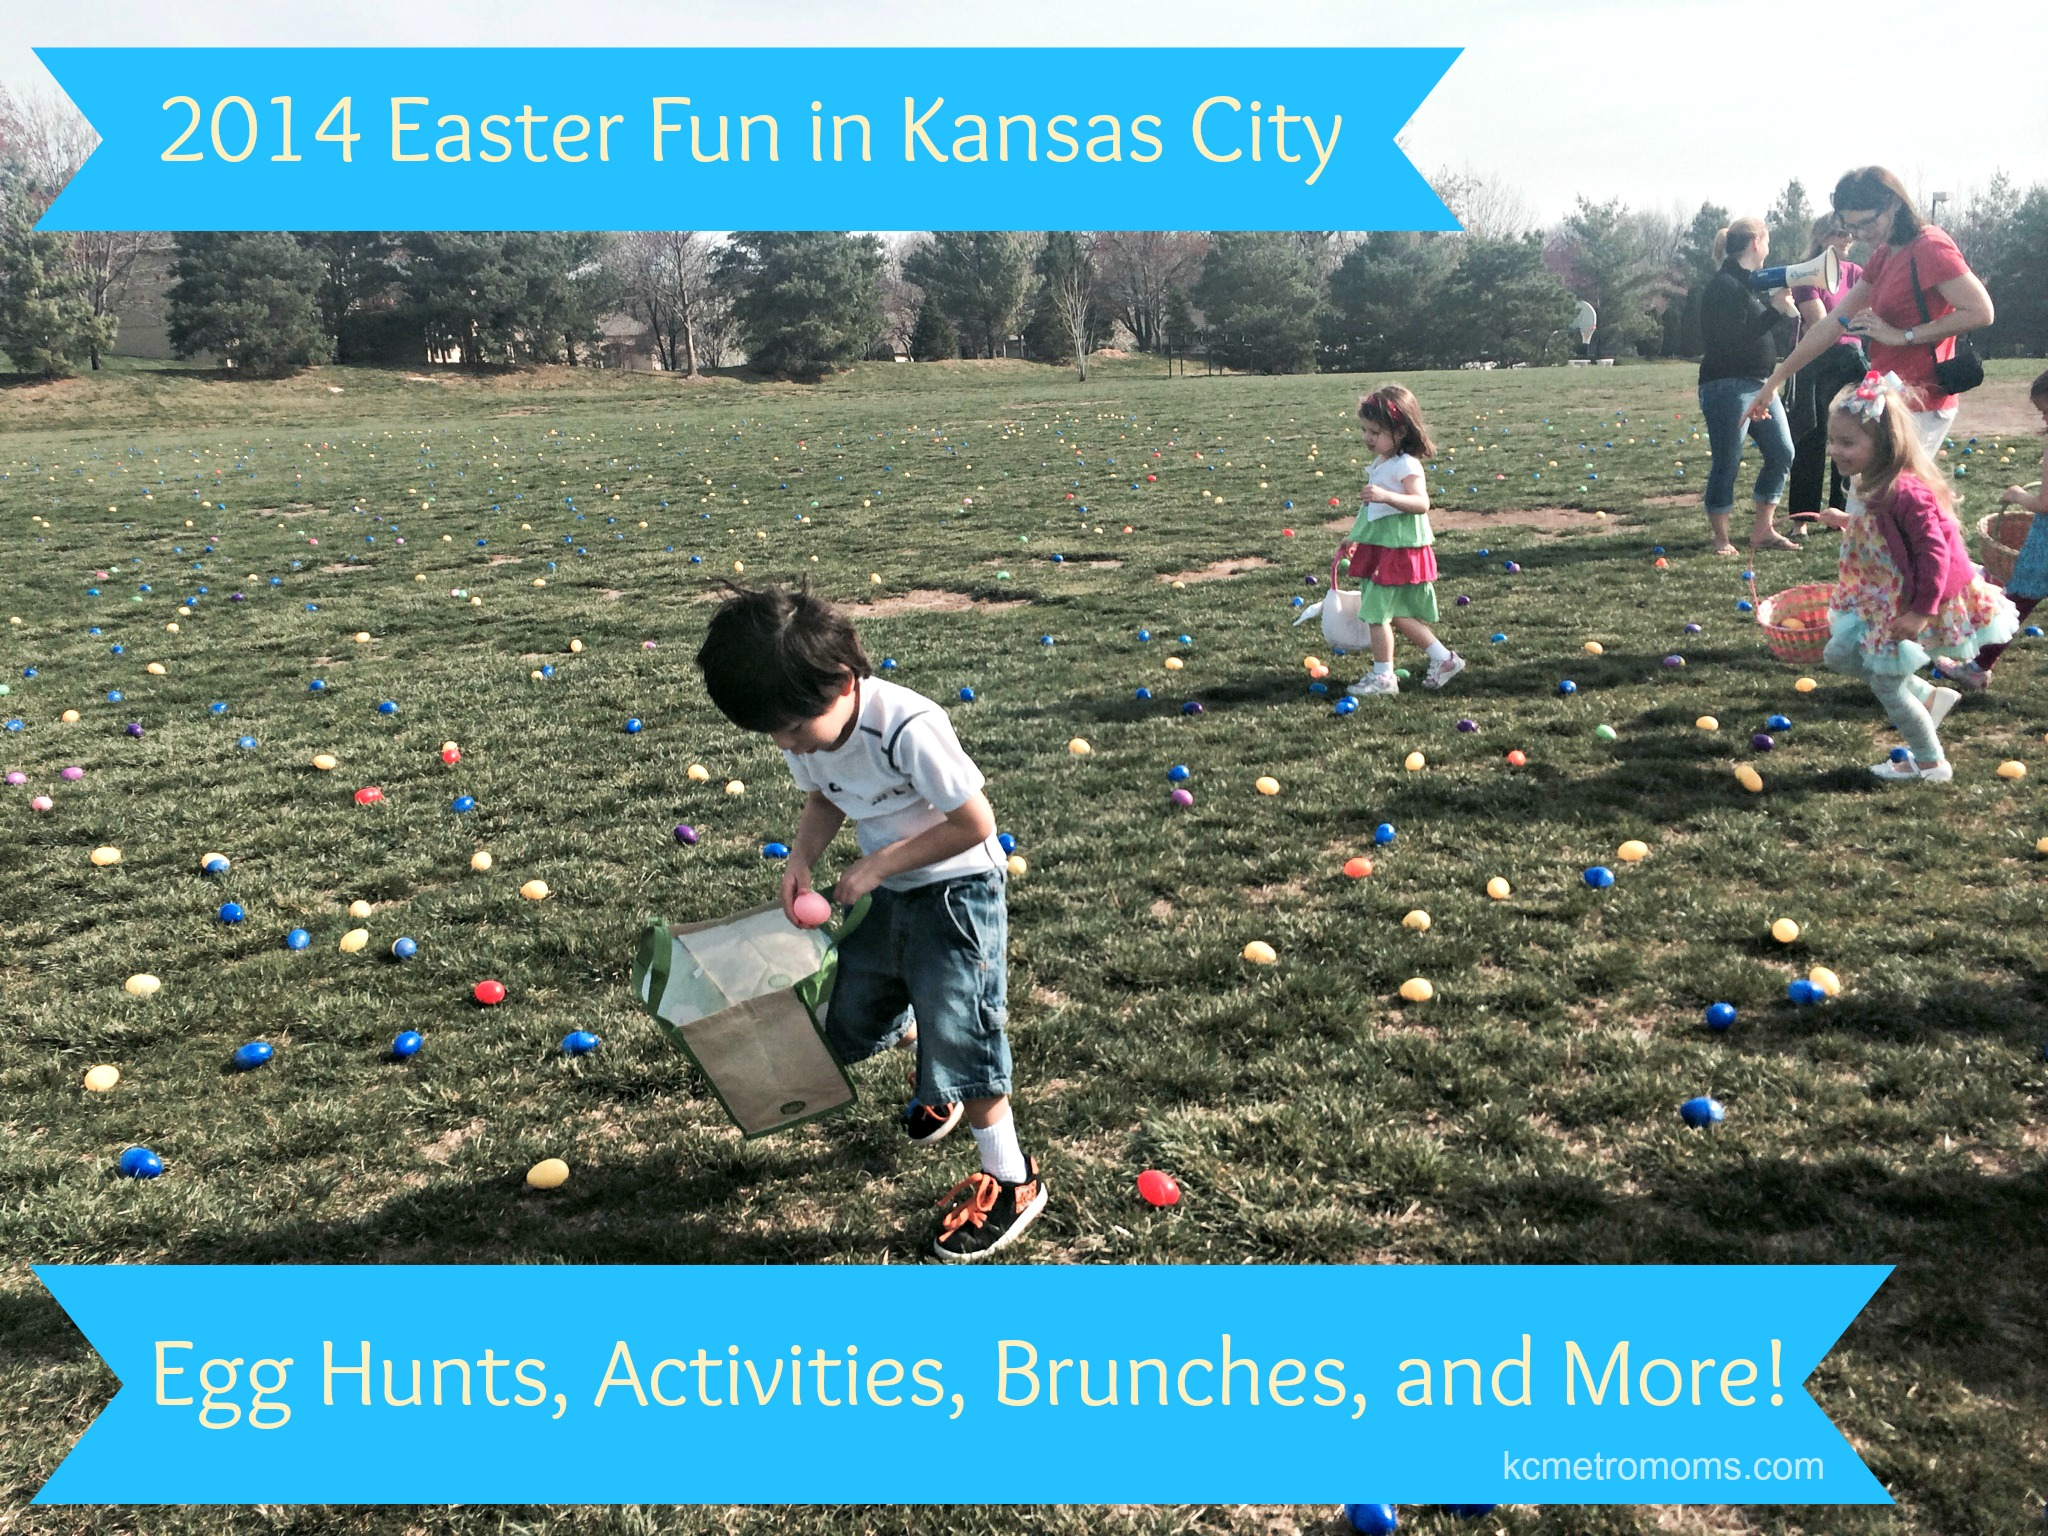 KC and JoCo Easter Activities, Brunches, Egg Hunts and More!